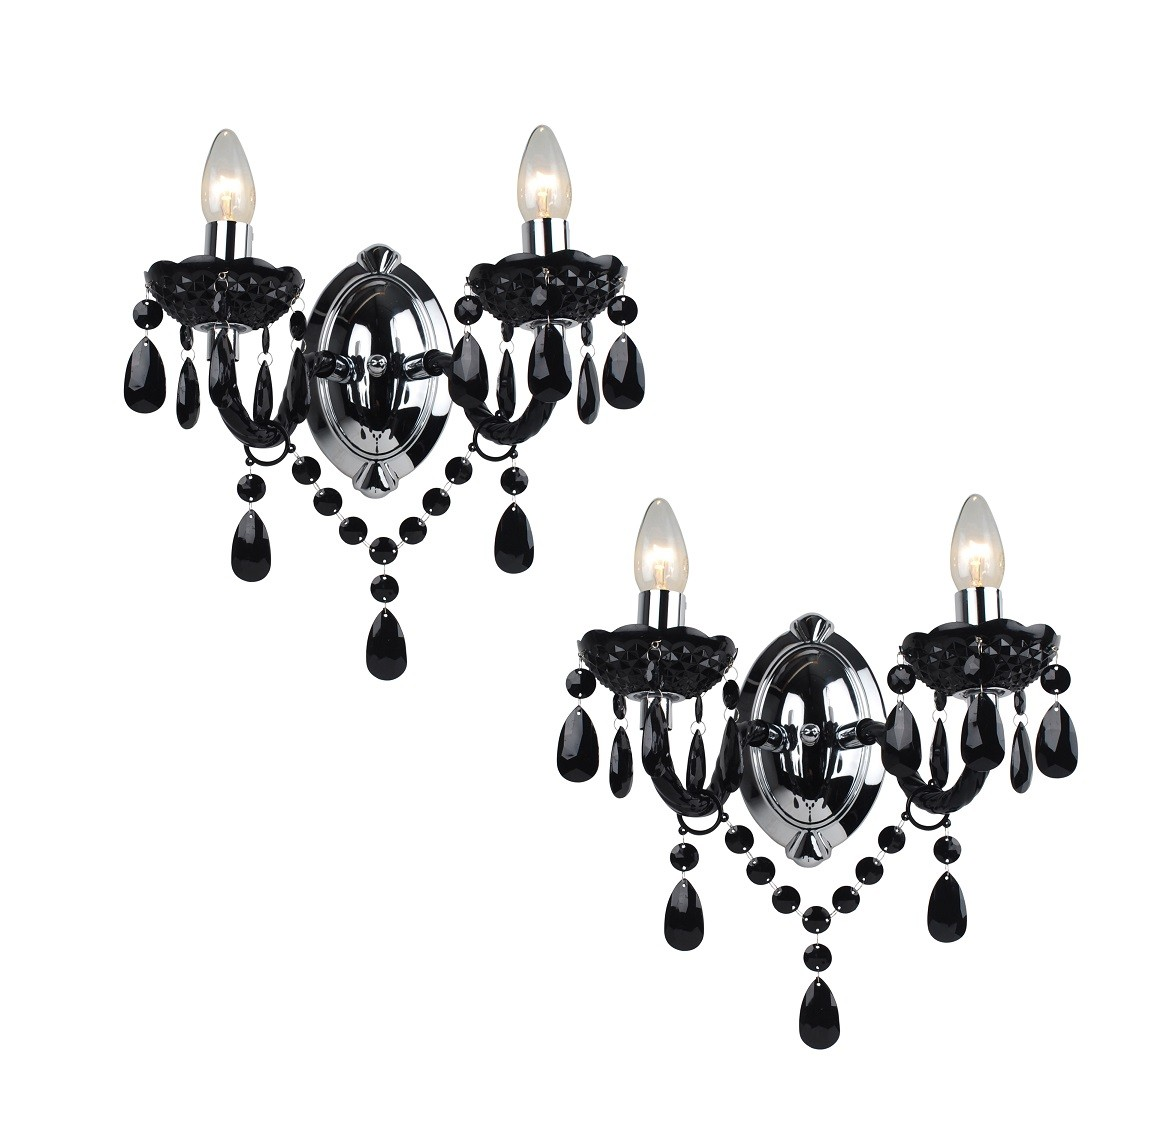 Marie Therese Wall Lights Chrome : Black & Chrome Marie Therese Style Wall Light